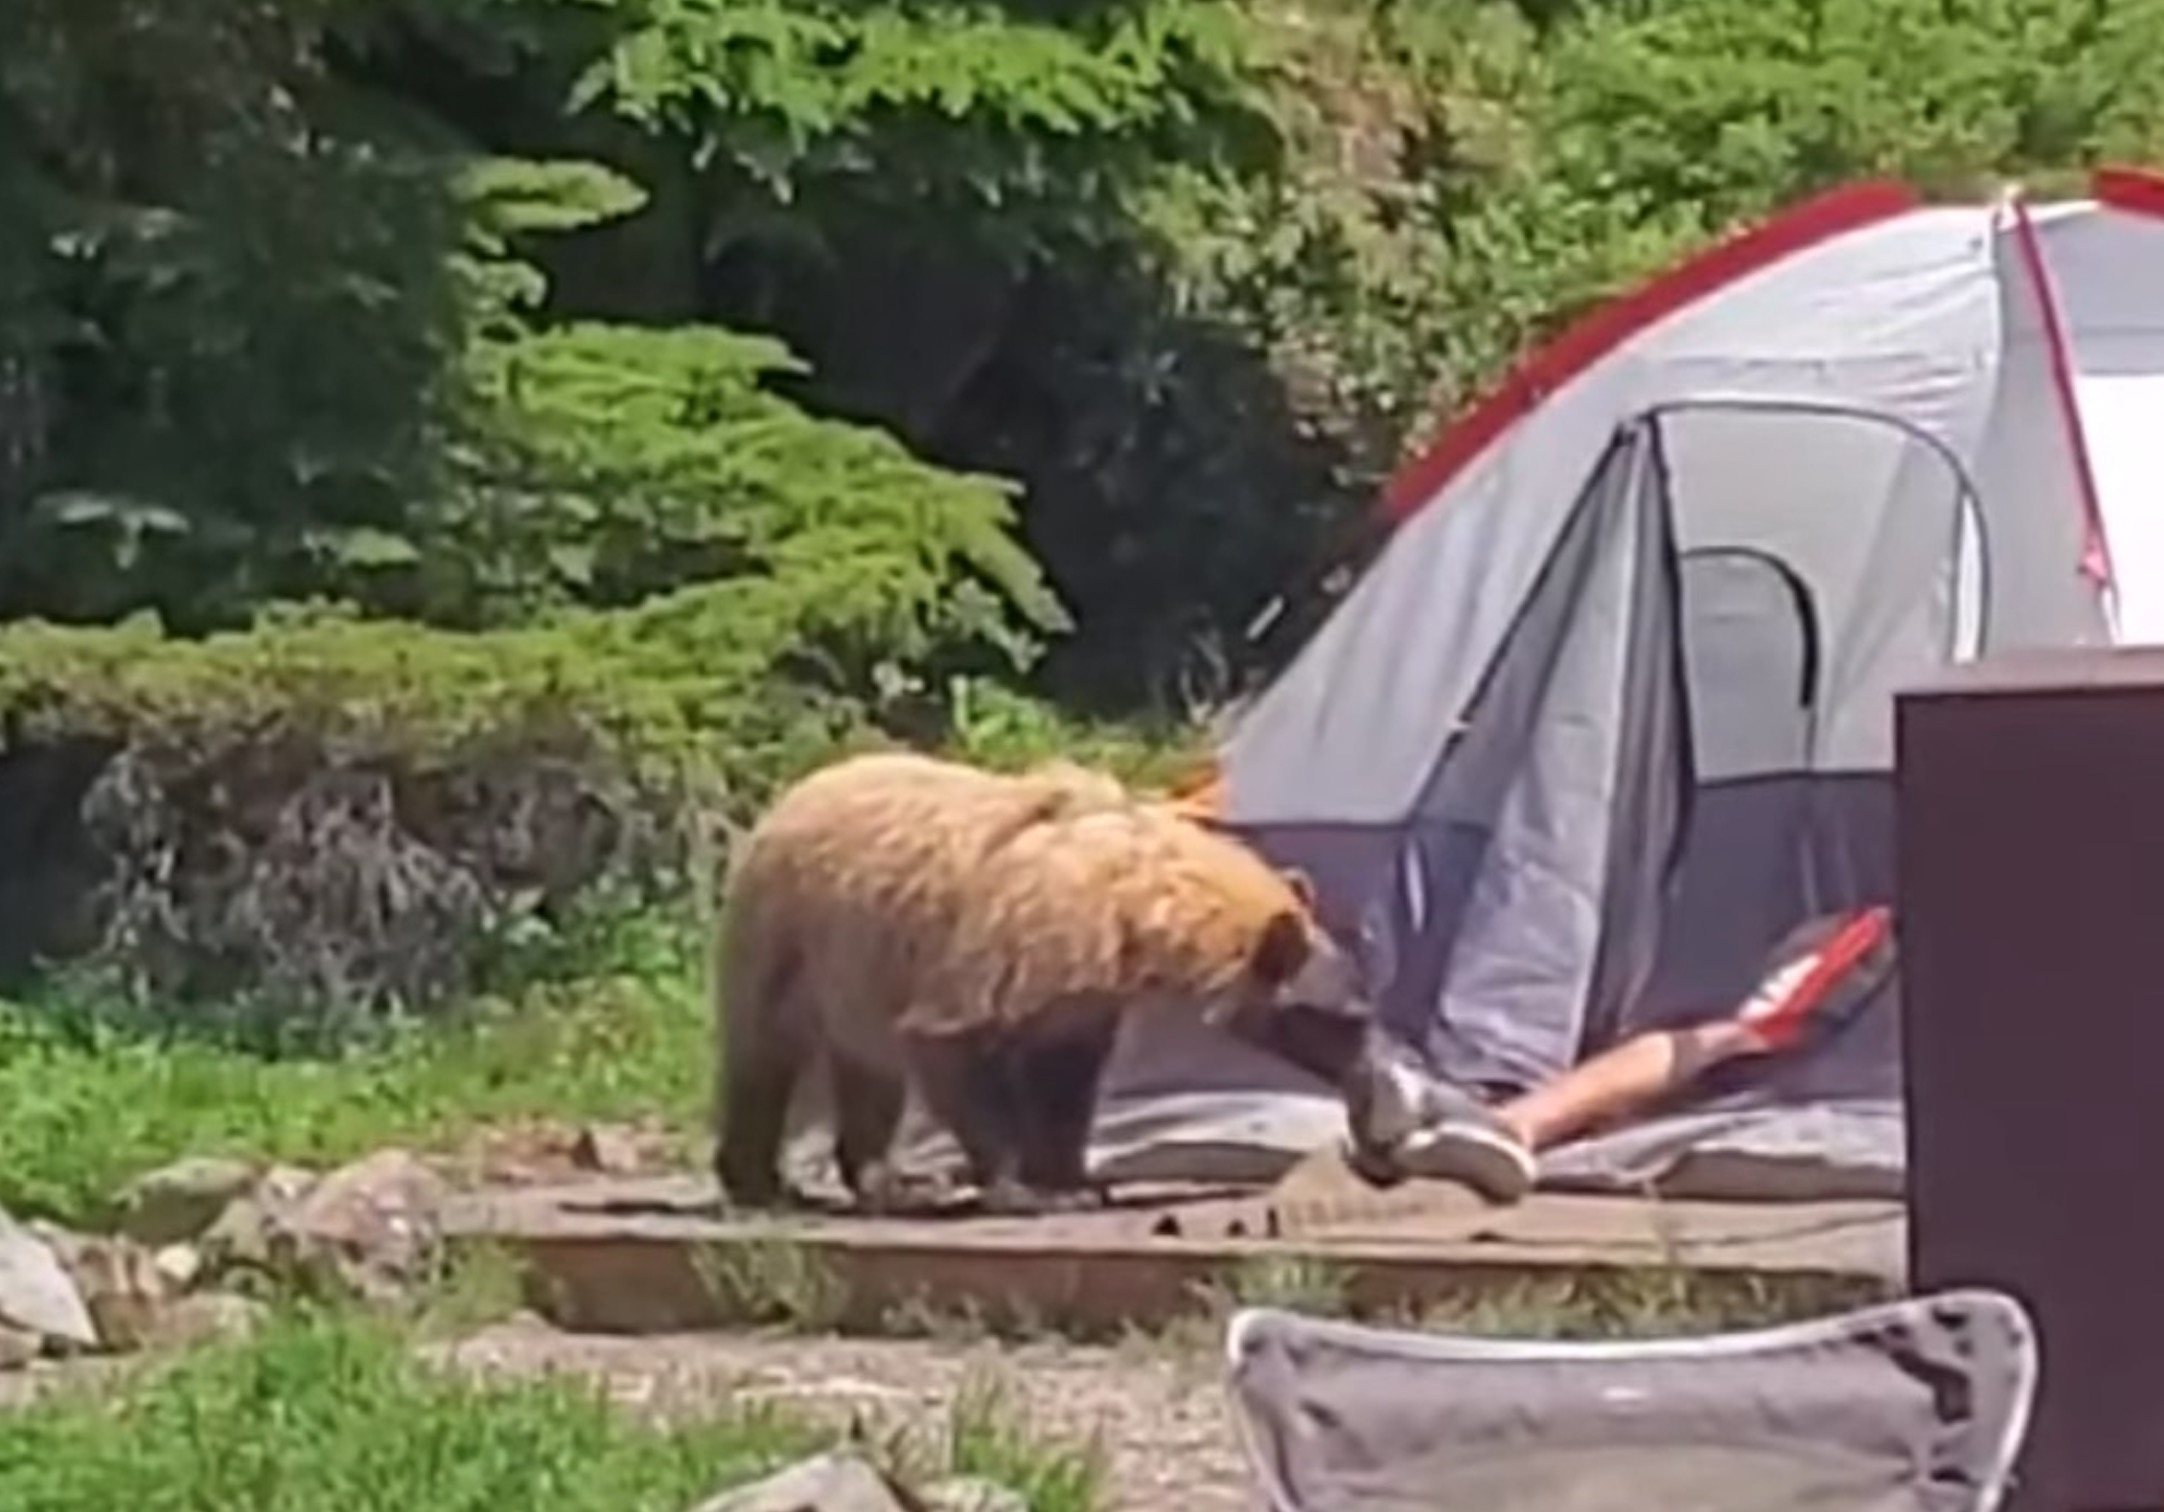 VIDEO: Curious Bear Wakes Up Camper @ Mount Rainer National Park